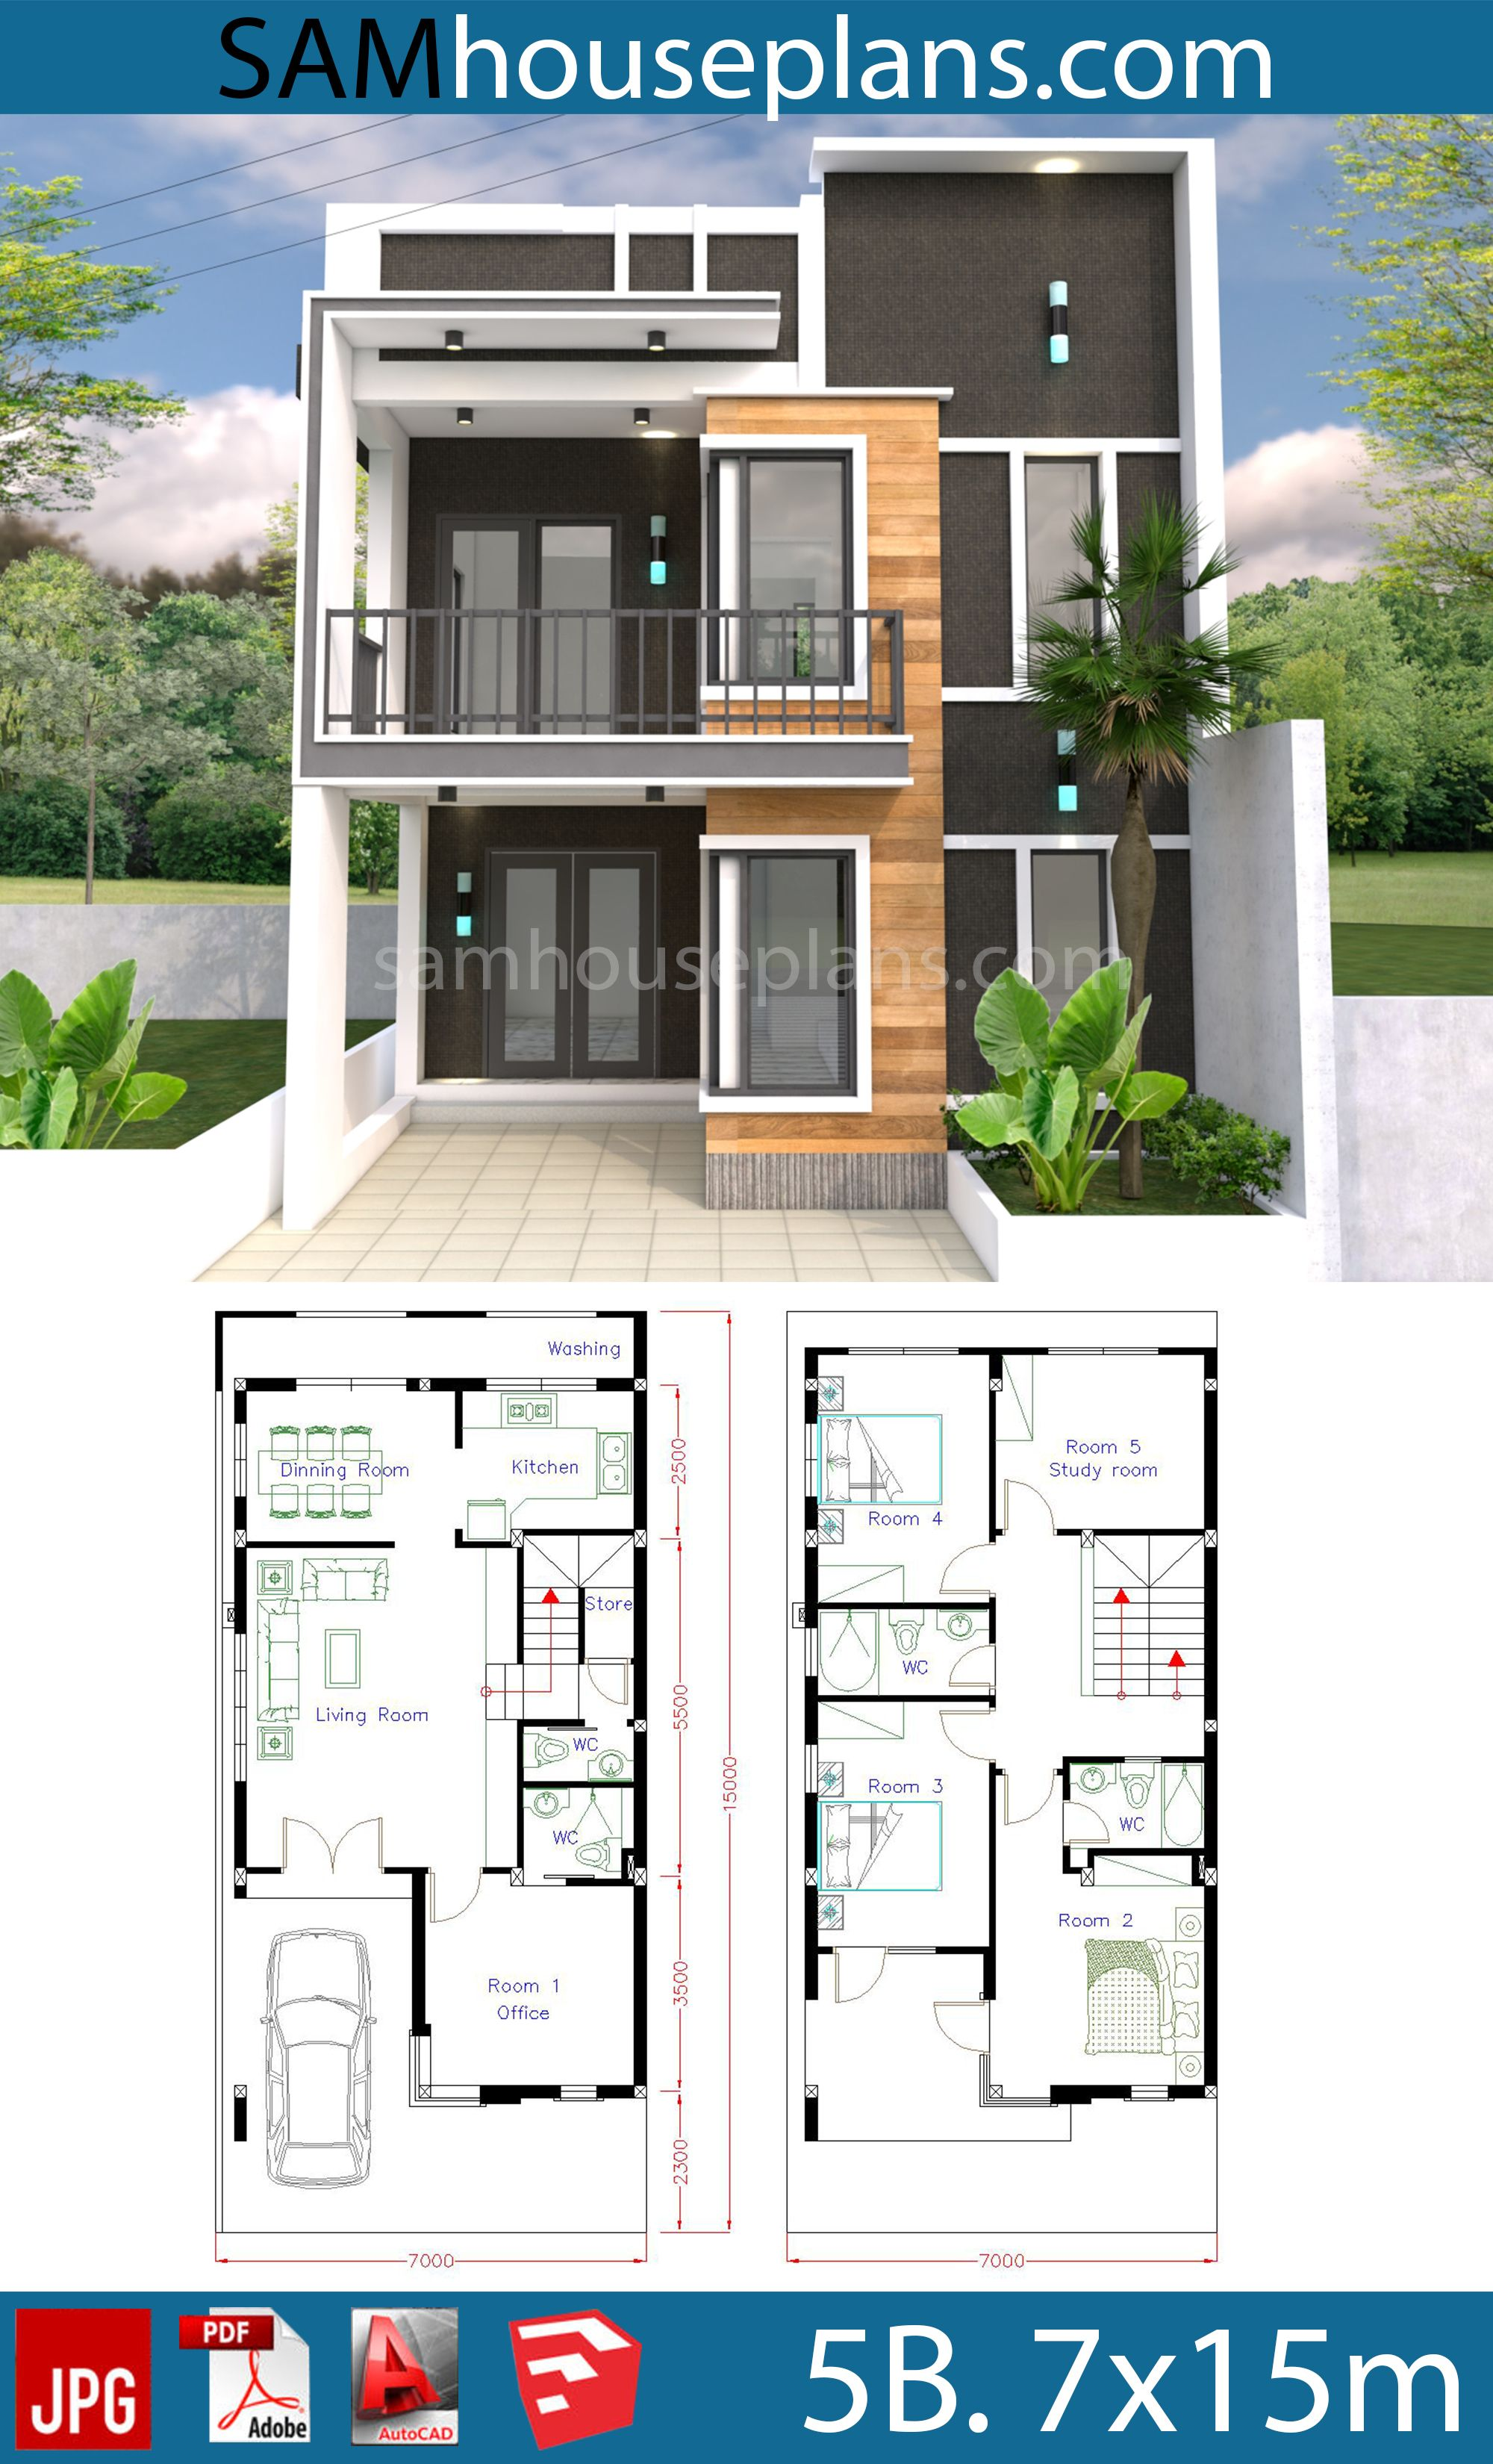 House Plans 7x15m With 4 Bedrooms House Construction Plan Model House Plan Duplex House Design